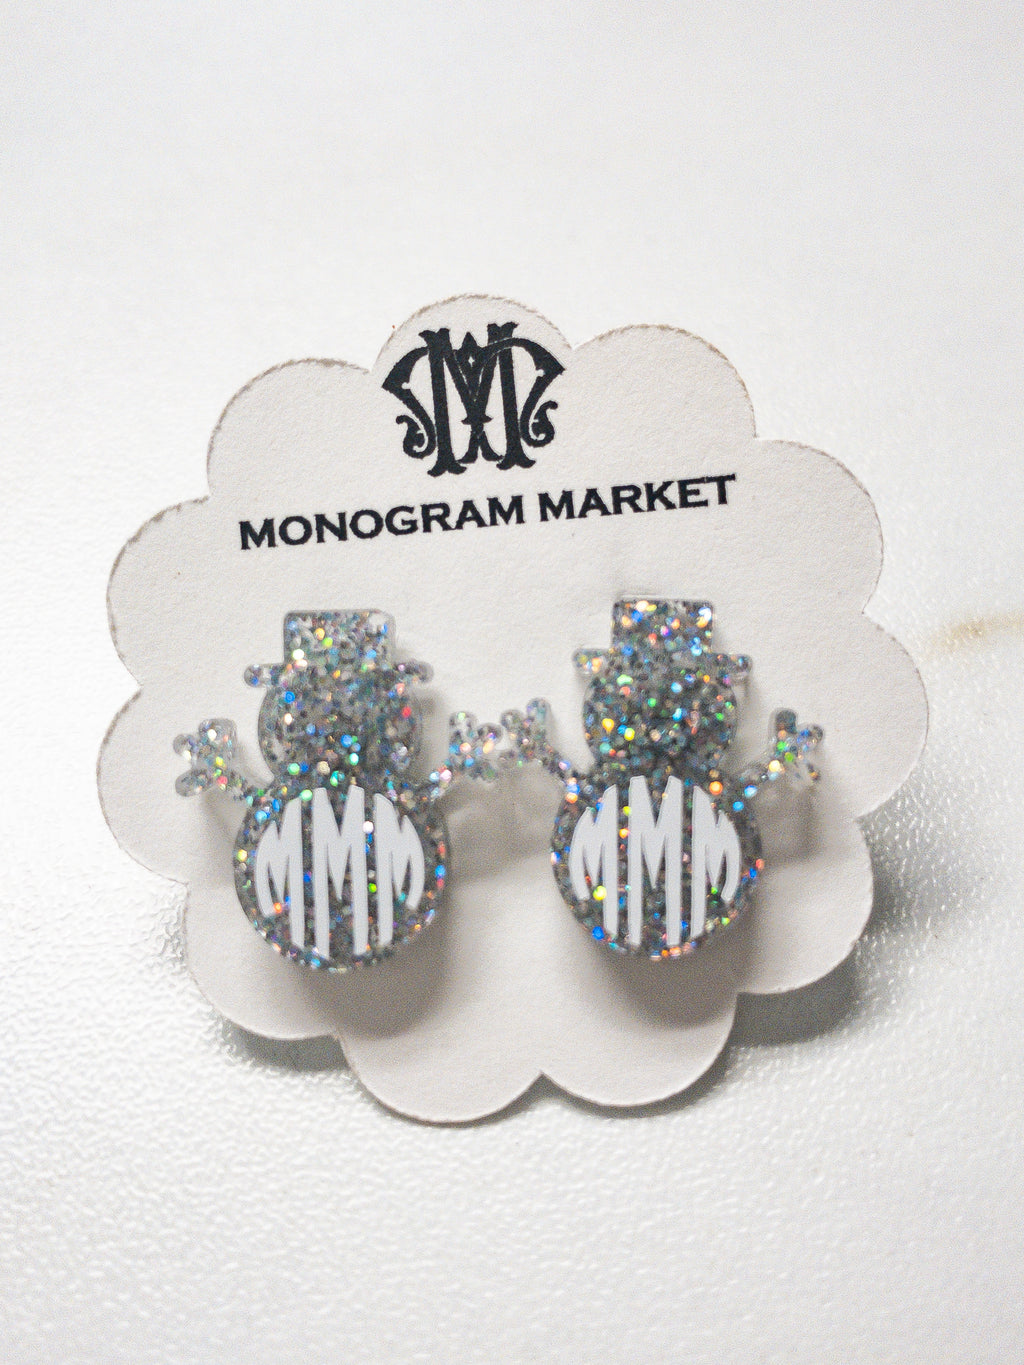 Monogram Market's Personalized Snowman Earrings - Monogram Gifts